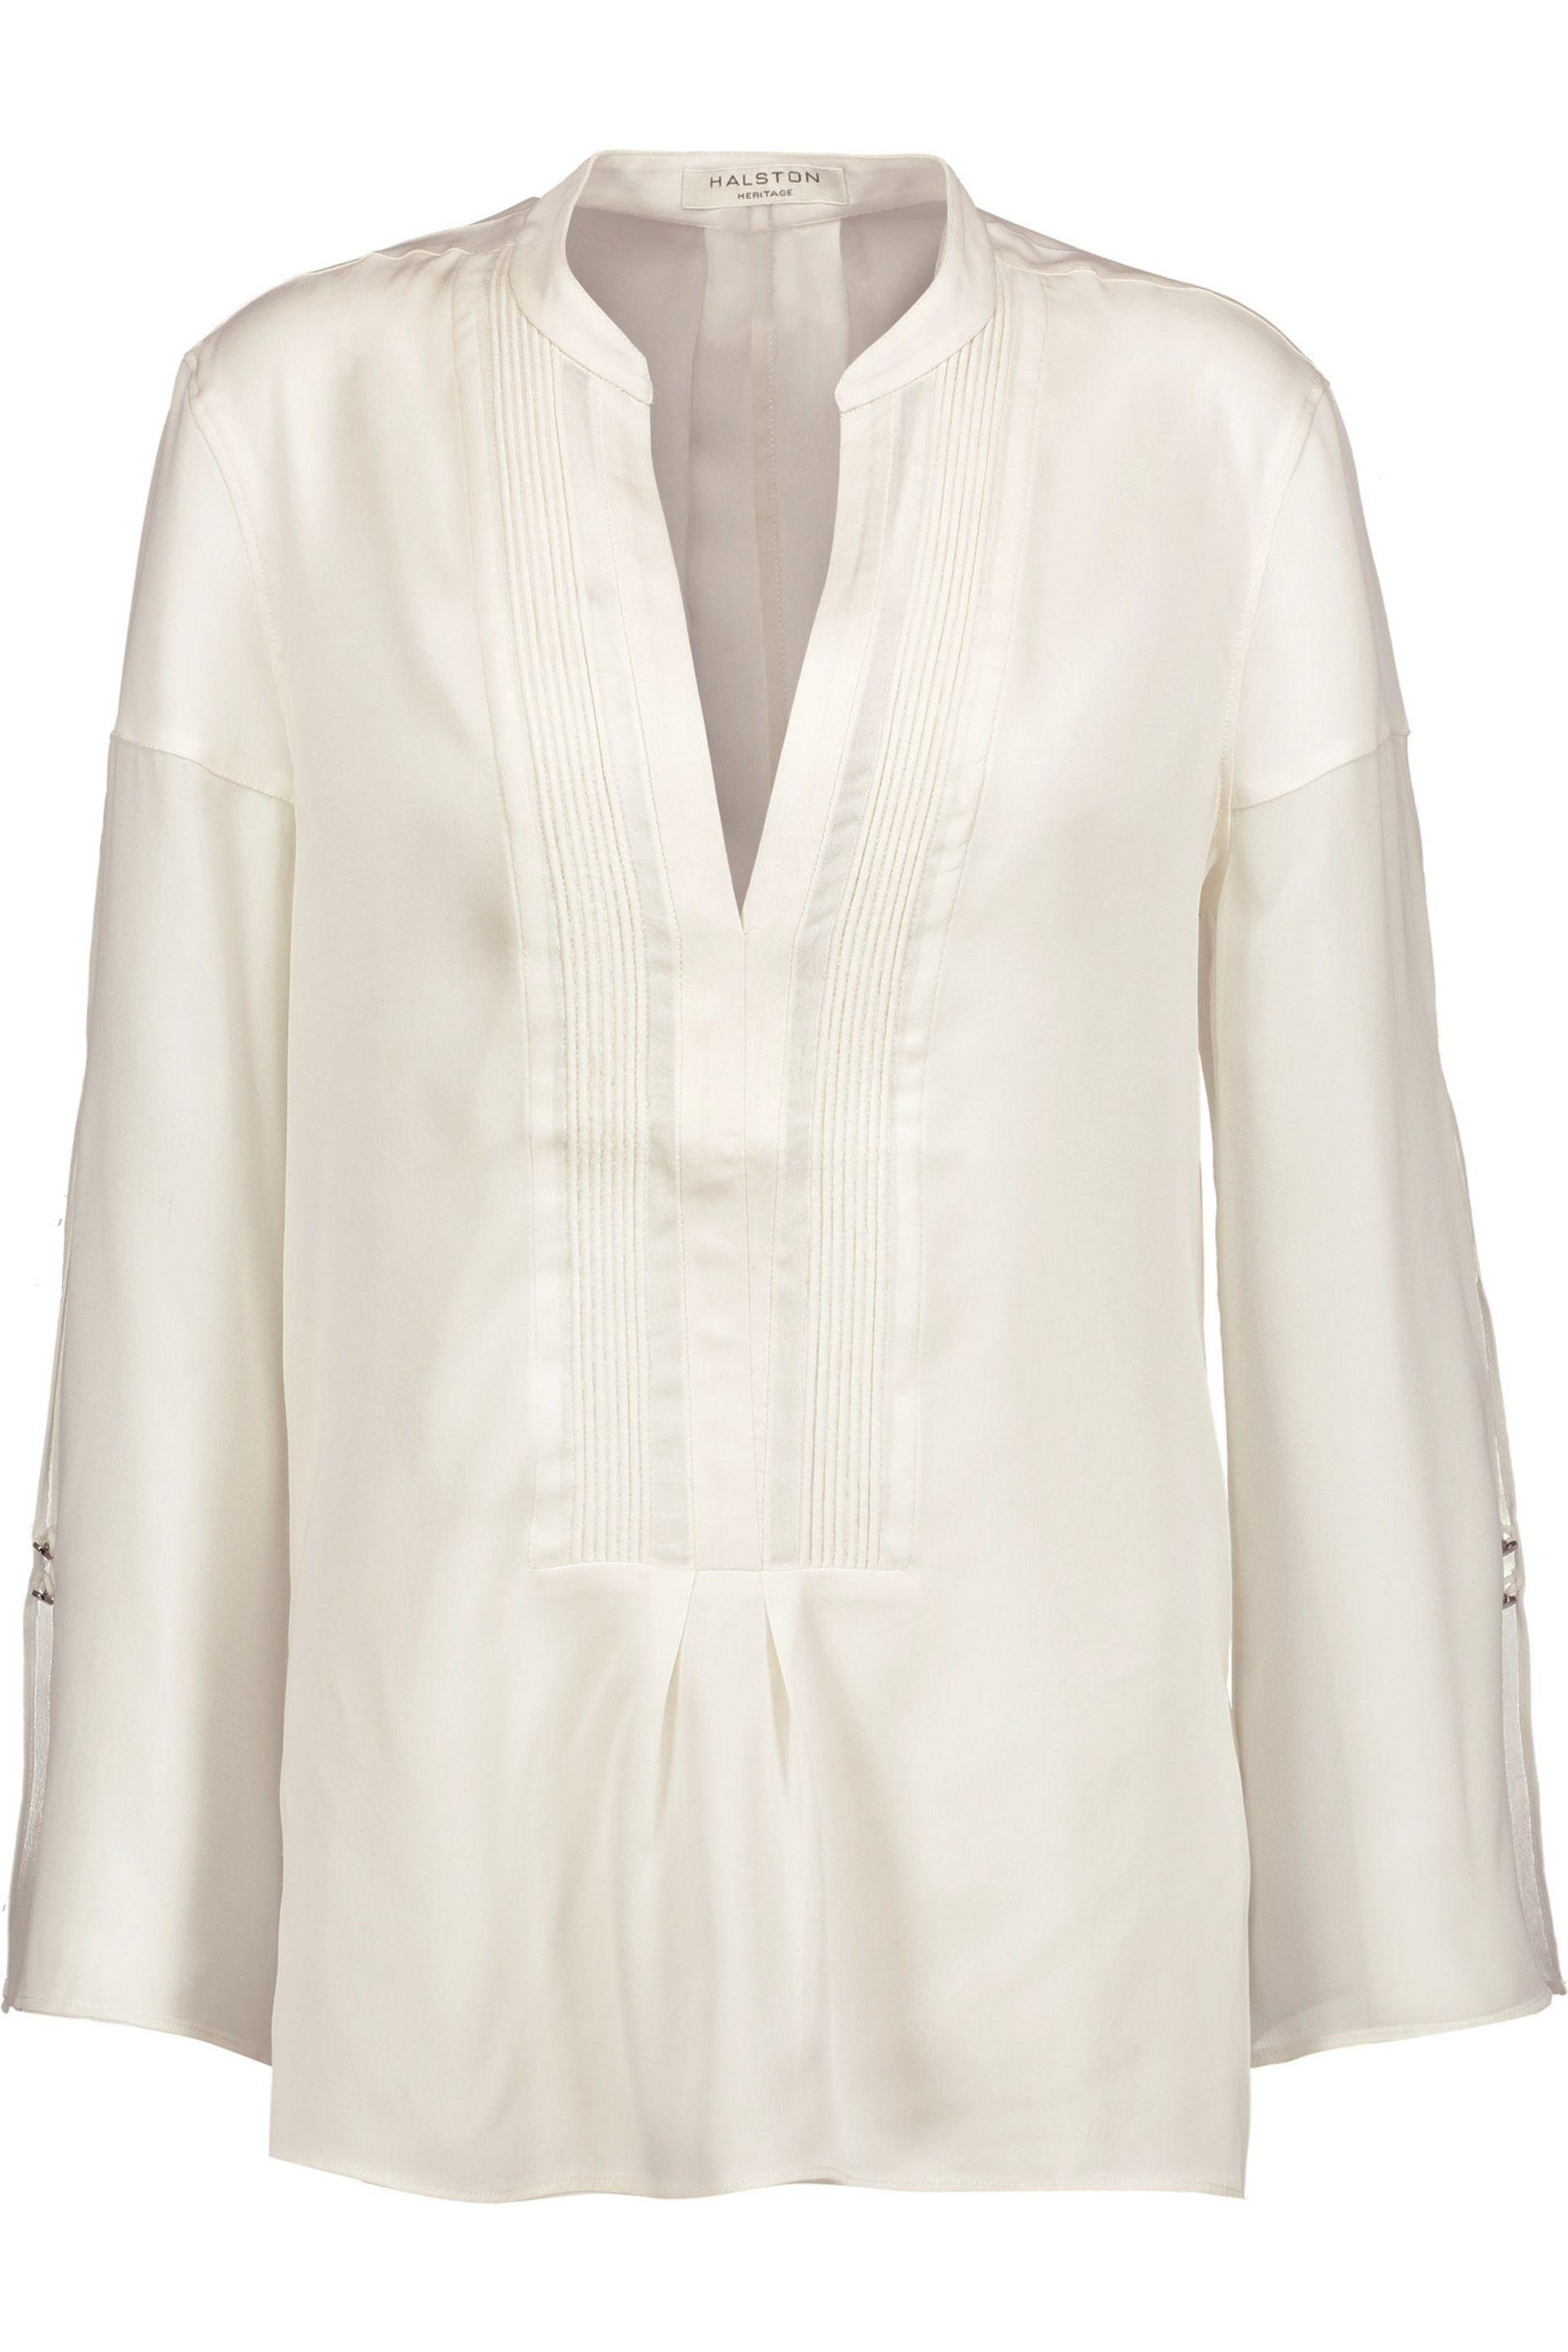 Free Shipping New Arrival Halston Heritage Woman Draped Printed Silk Crepe De Chine Top Ivory Size XL Halston Heritage Discount Fast Delivery Discount Shopping Online 38NqY4E